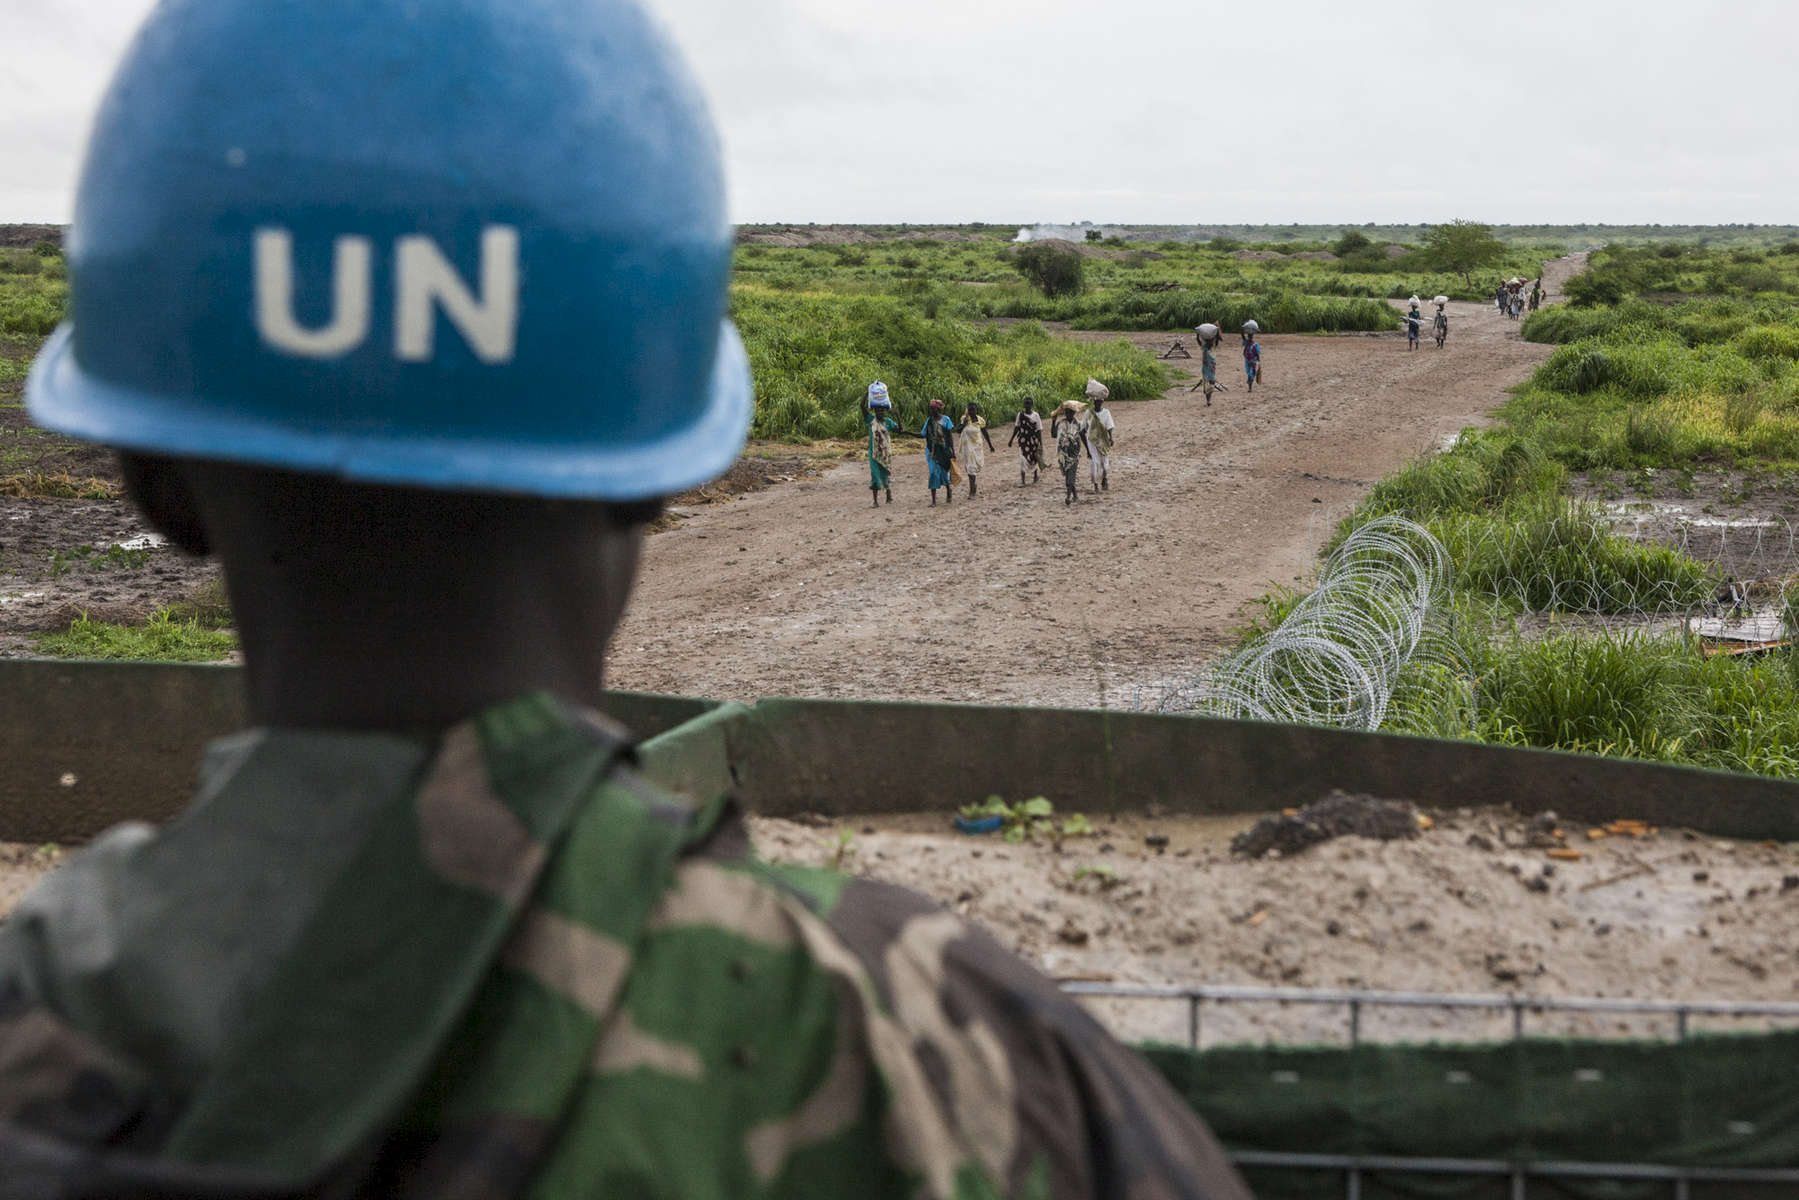 A UN Peacekeeper stands guard at an outpost as civilians enter the Protection of Civilians (POC) site outside the United Nations Mission in South Sudan (UNMISS) compound in Malakal, South Sudan on Wednesday, July 13, 2016. The Malakal POC site houses over 32,000 displaced people mainly from the Shilluk and Nuer tribes. In February of this year, members of the Dinka tribe, who resided in the camp at the time, carried out a coordinated attack within the site leading to the destruction of hundreds of shelters and many deaths. Since then, most members of the Dinka tribe have fled to Malakal town where they occupy the homes of those still displaced. The UN has assured the displaced people that increased security measures around the camp will protect them from any further attack. Most of the displace are not convinced.